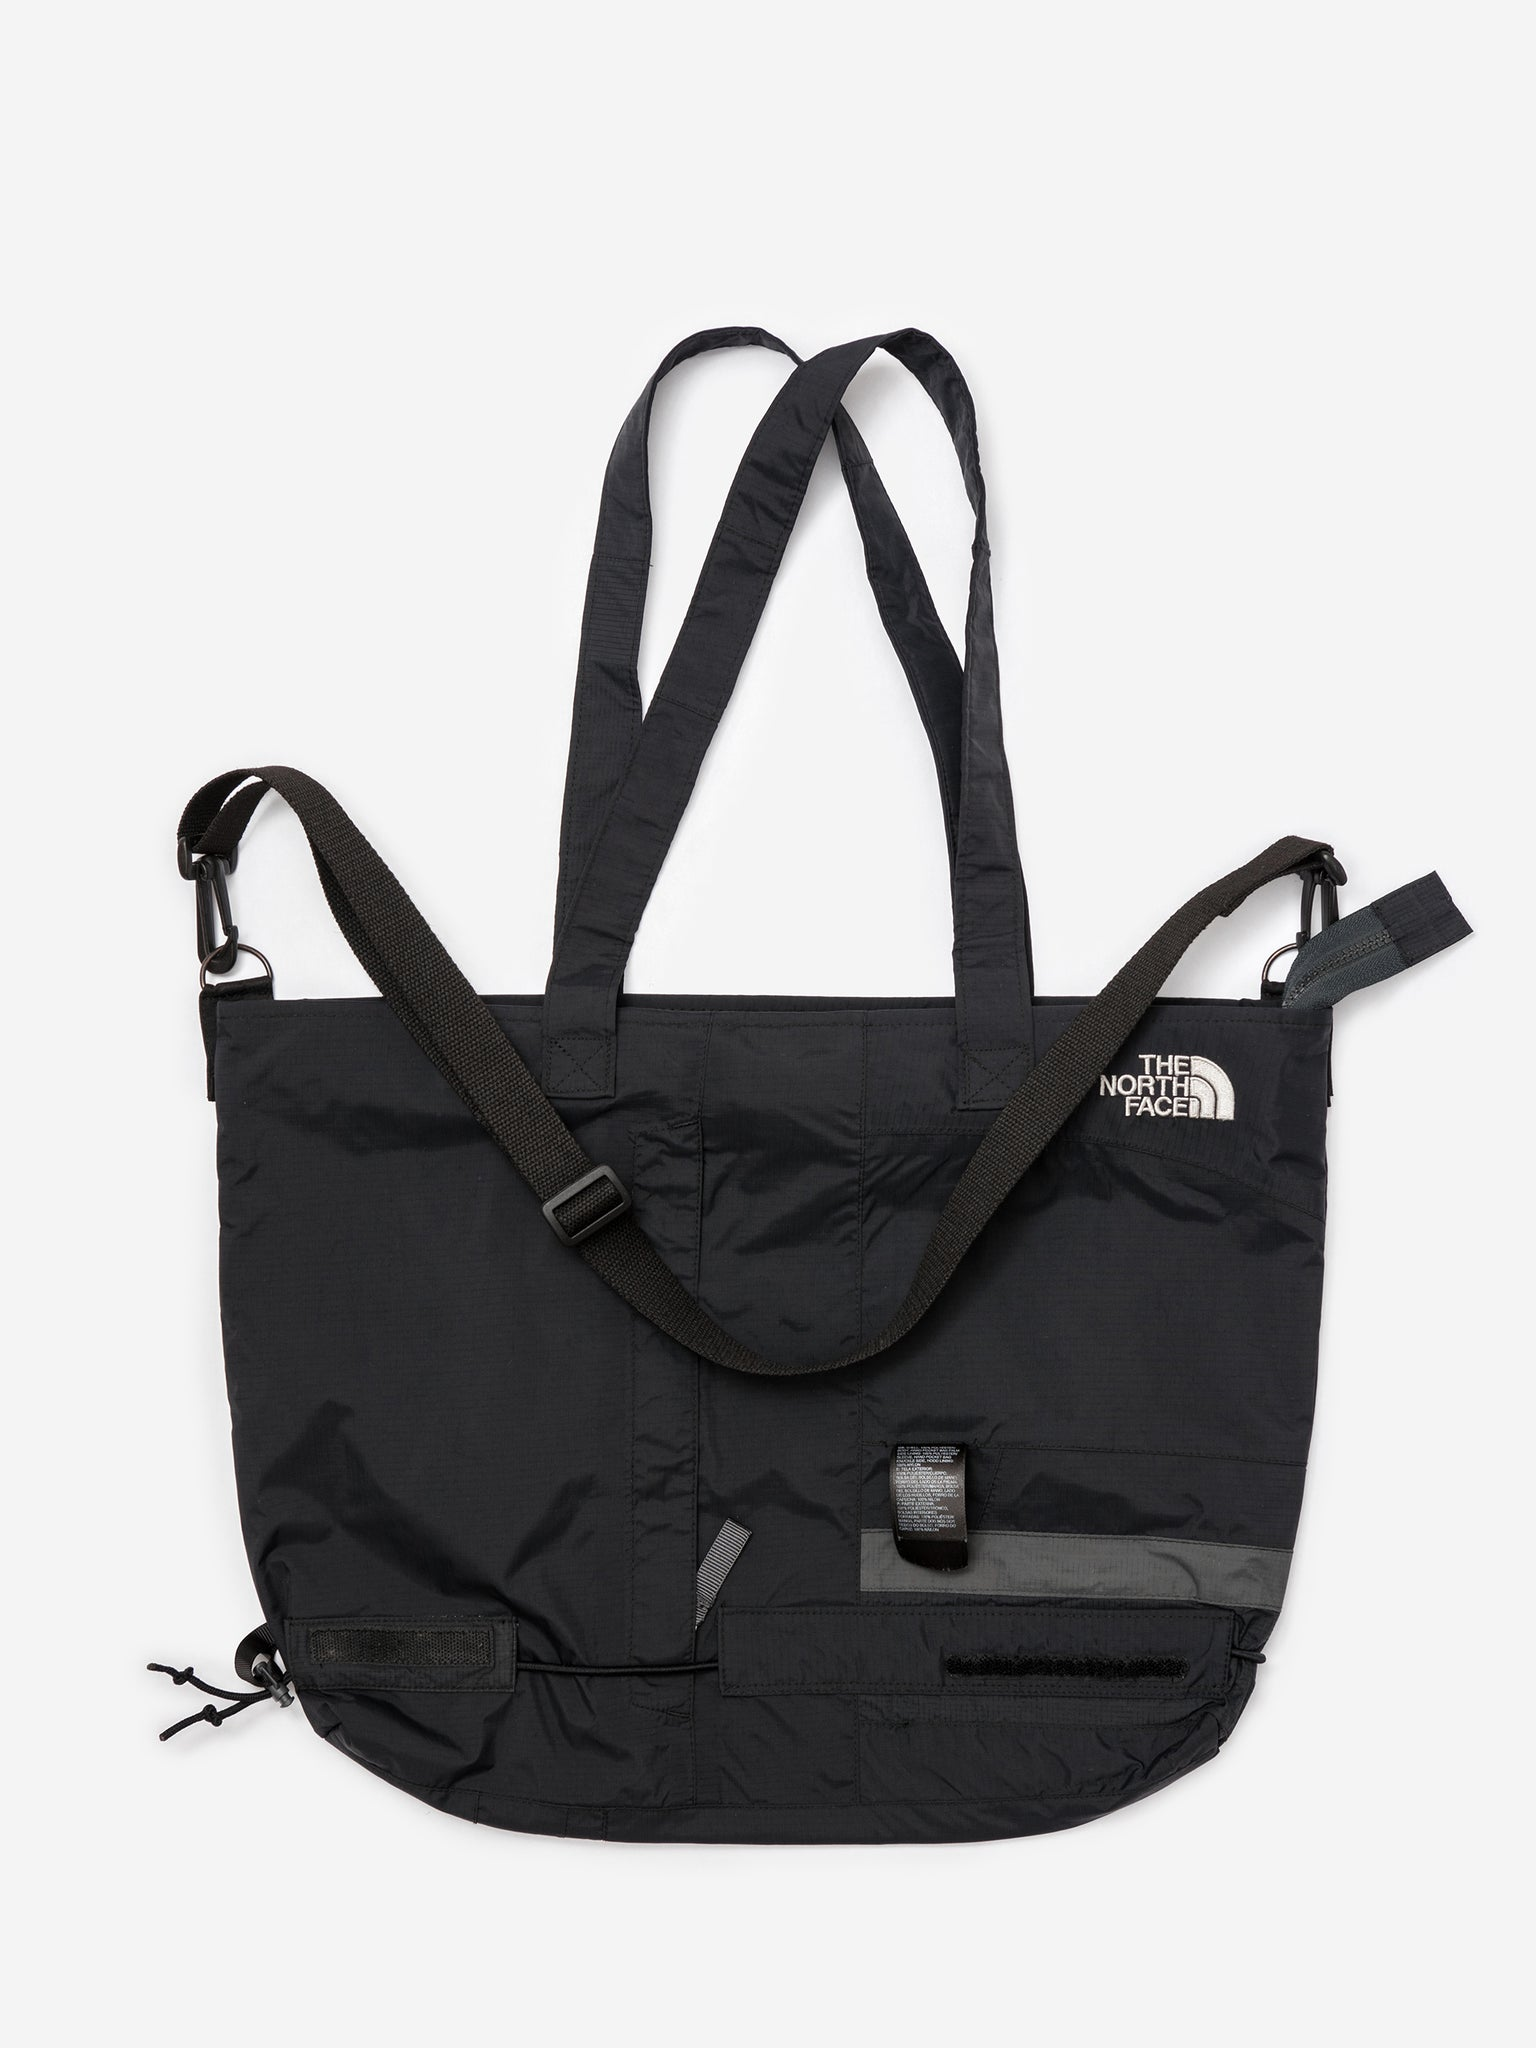 THE NORTH FACE RECONSTRUCTED TOTE BAG C.008